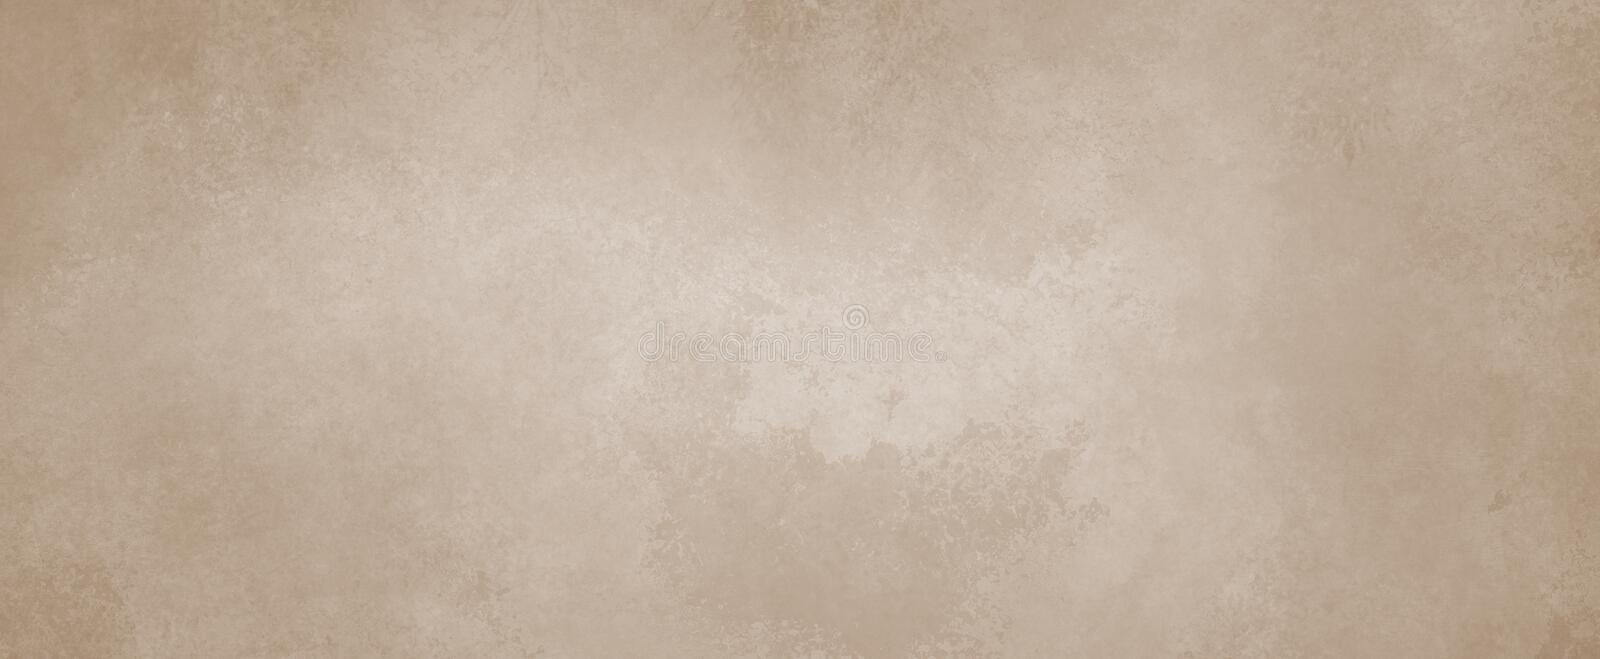 Brown background with distressed vintage grunge borders and pale tan color vector illustration